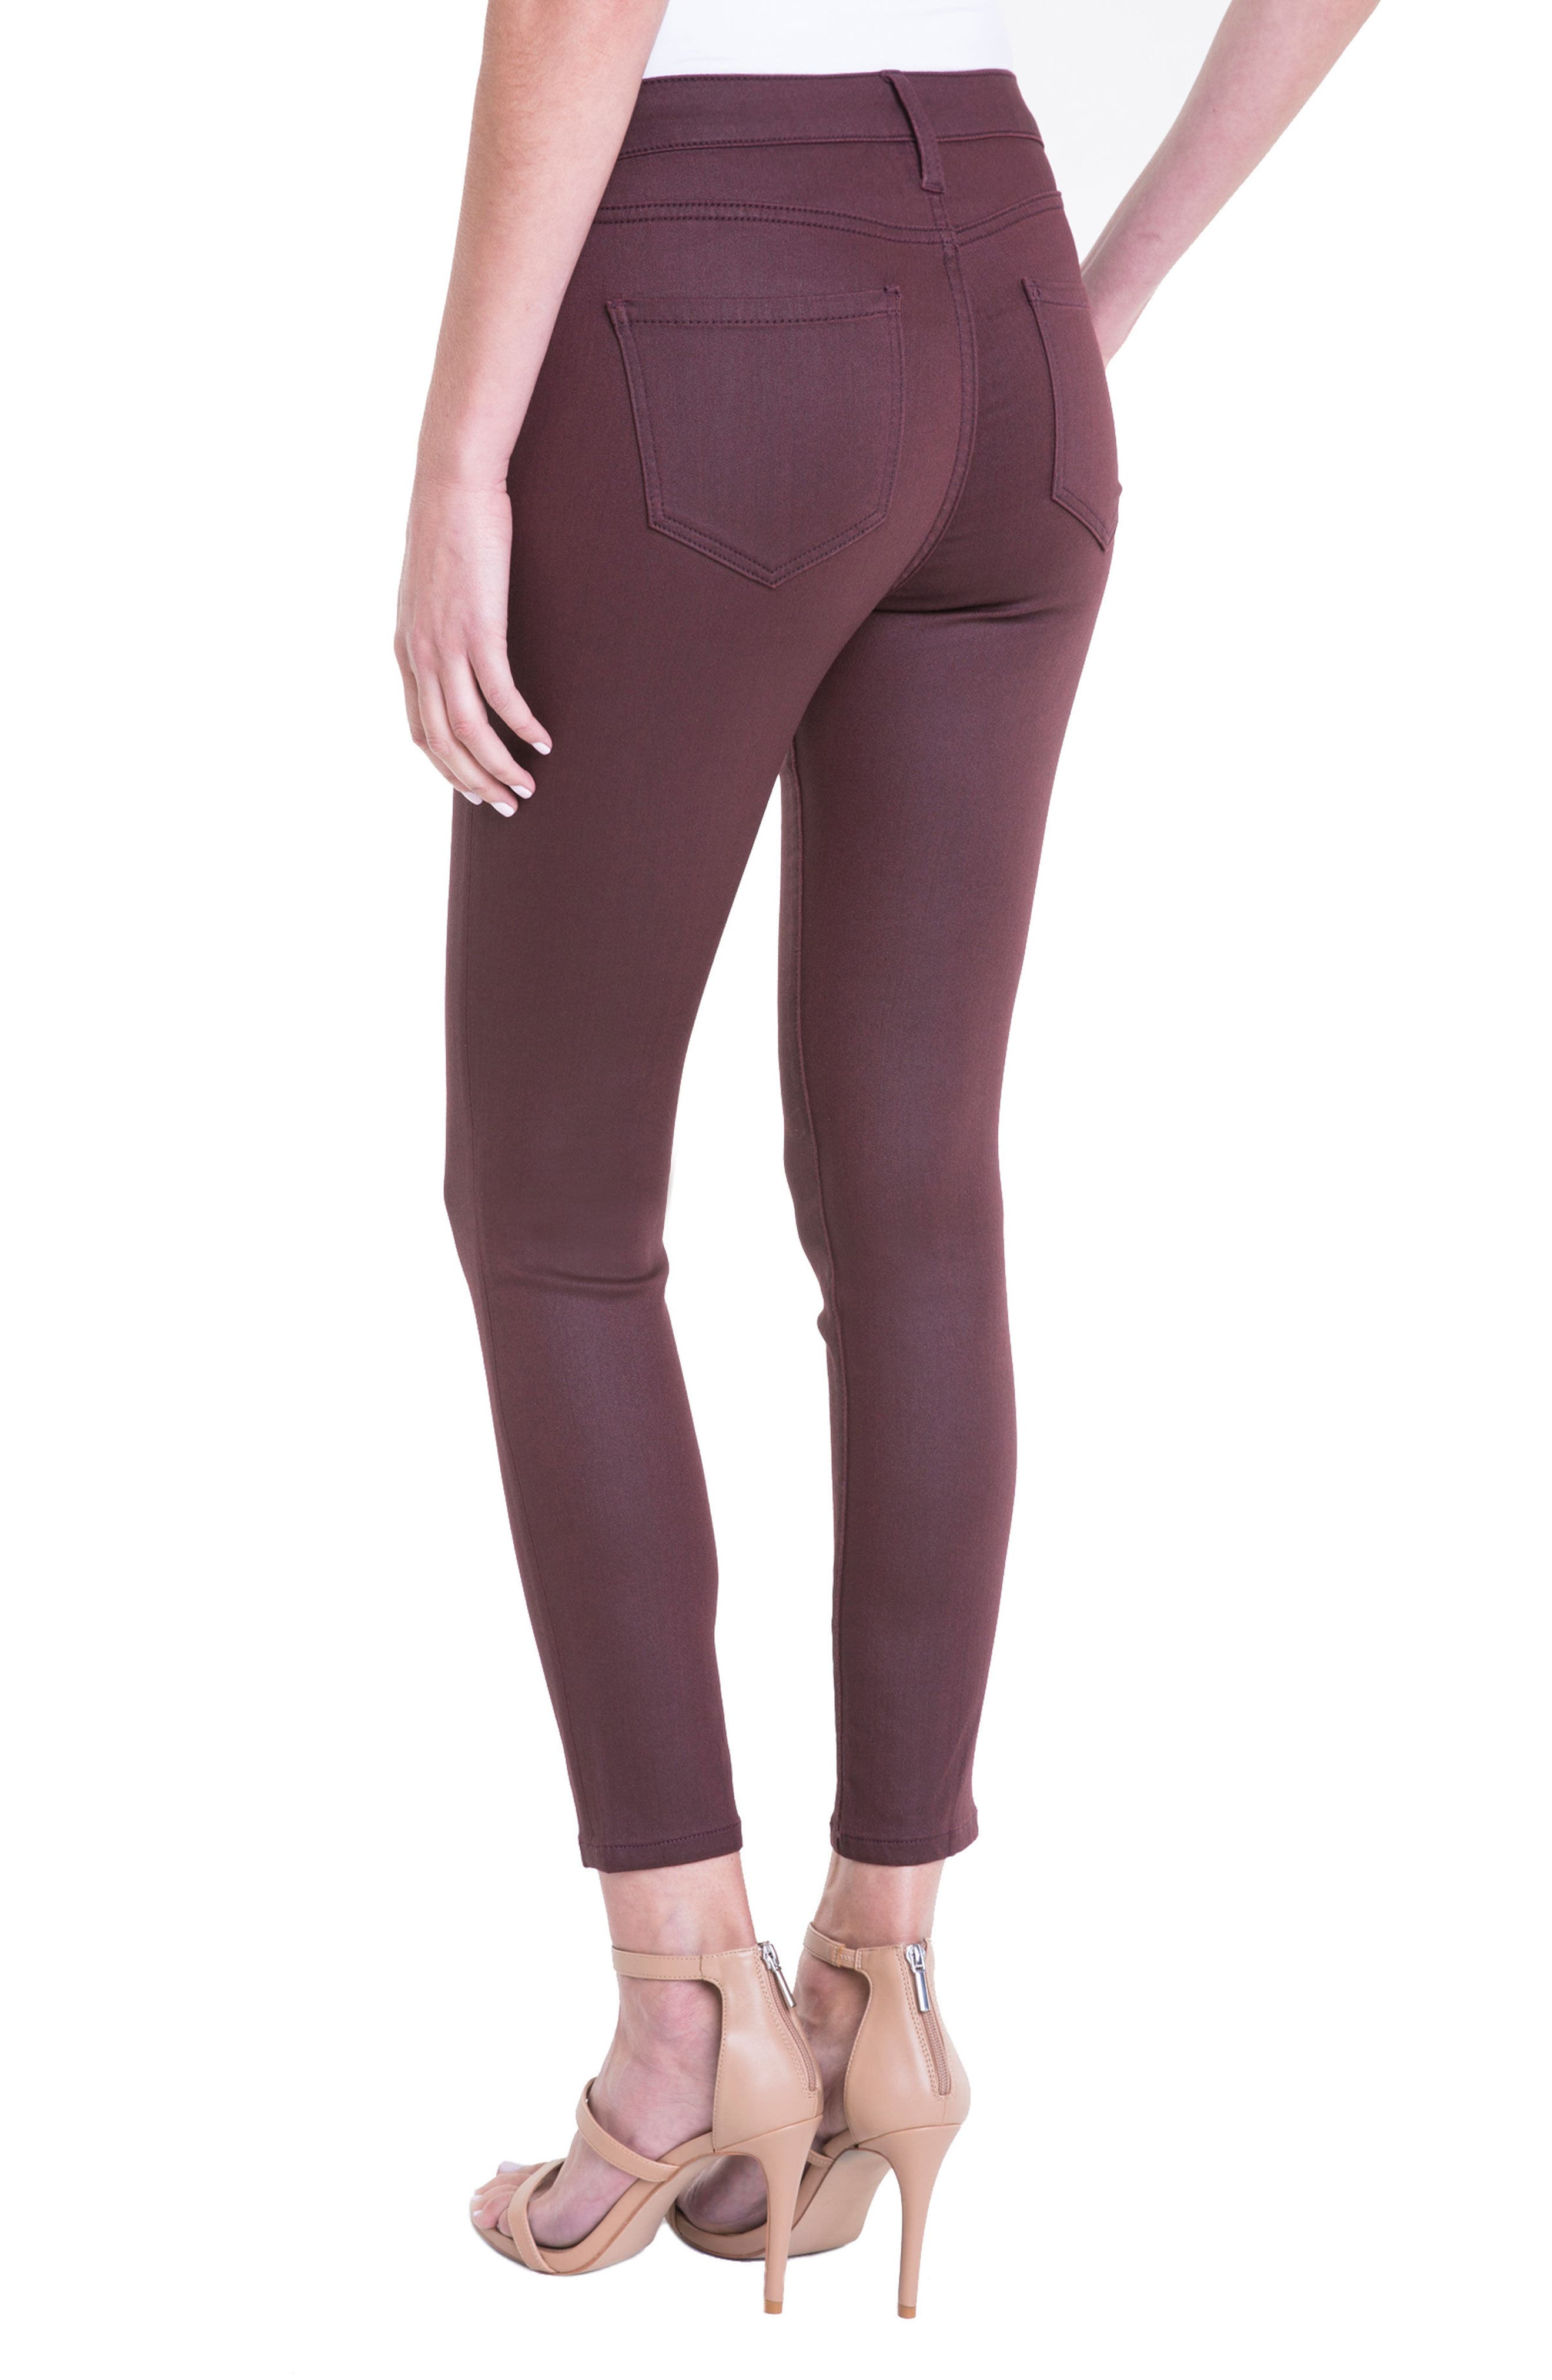 Jeans Company Bridget High Waist Skinny Jeans,                             Alternate thumbnail 8, color,